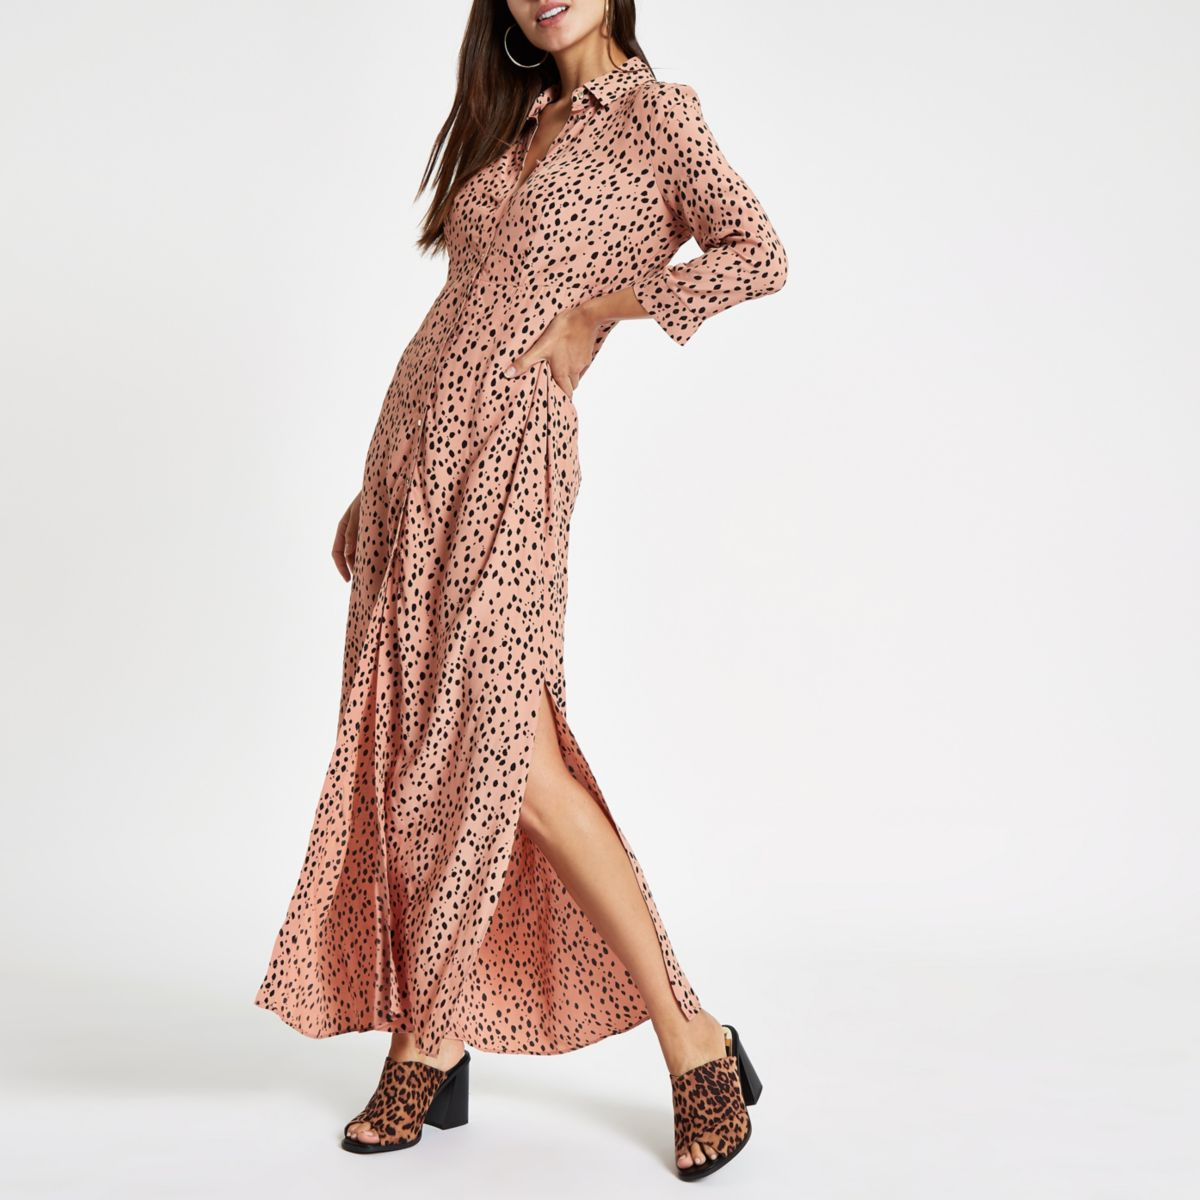 ultimate-style-guide-outfit for in-and out-of-office-River-Island-spot-print-maxi-dress